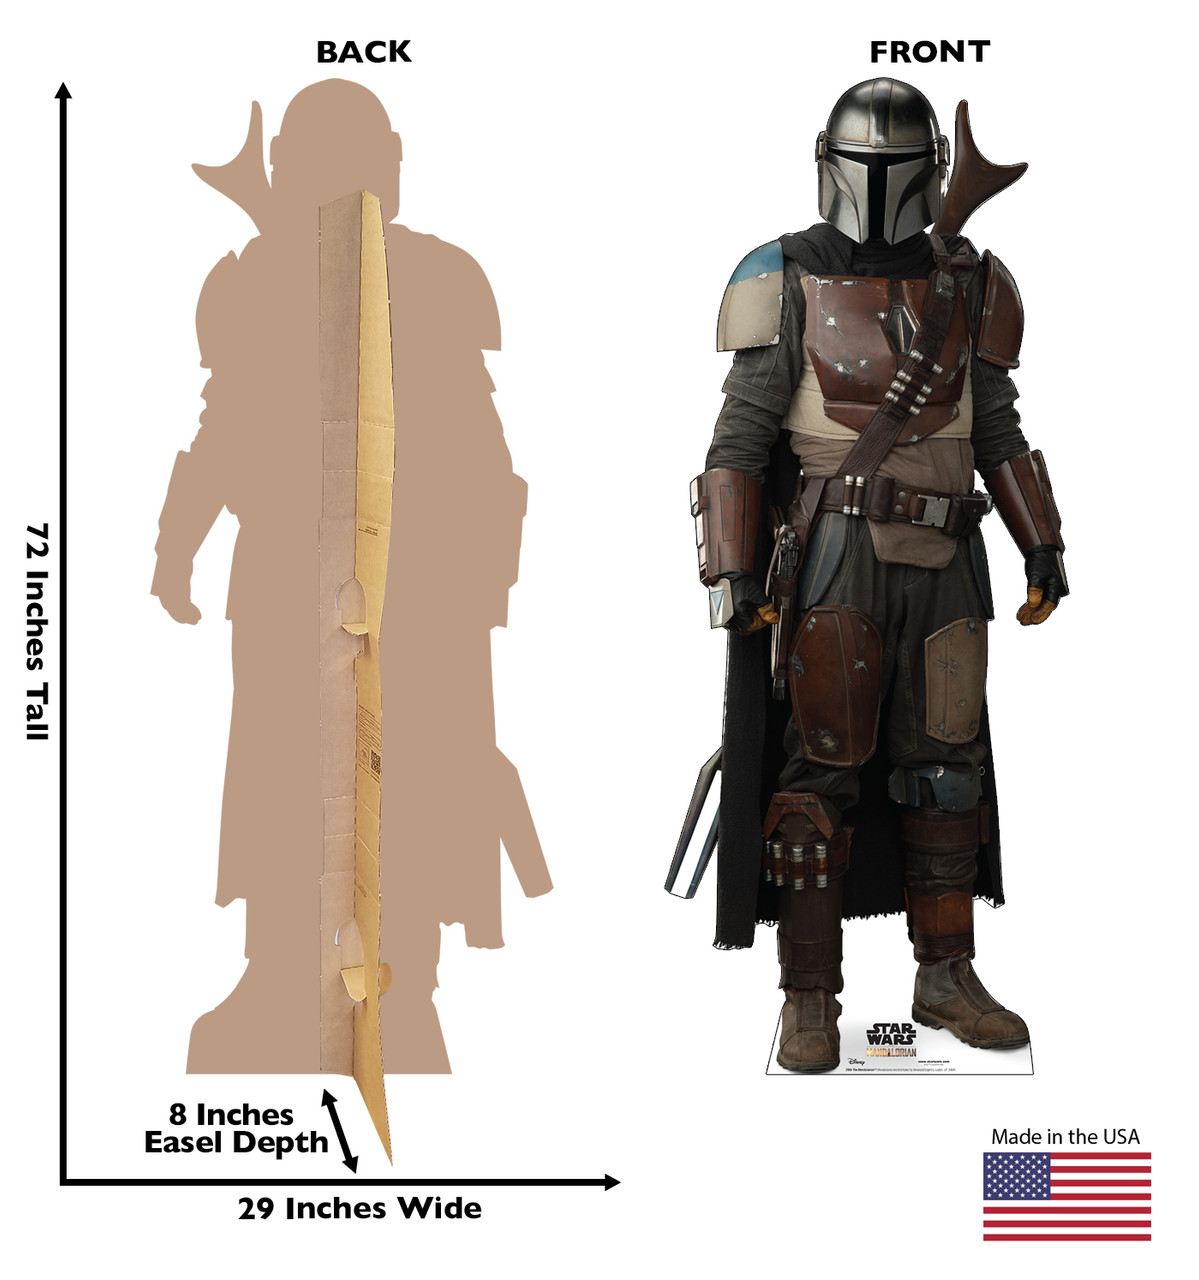 Life-size cardboard standee of The Mandalorian with back and front dimensions.